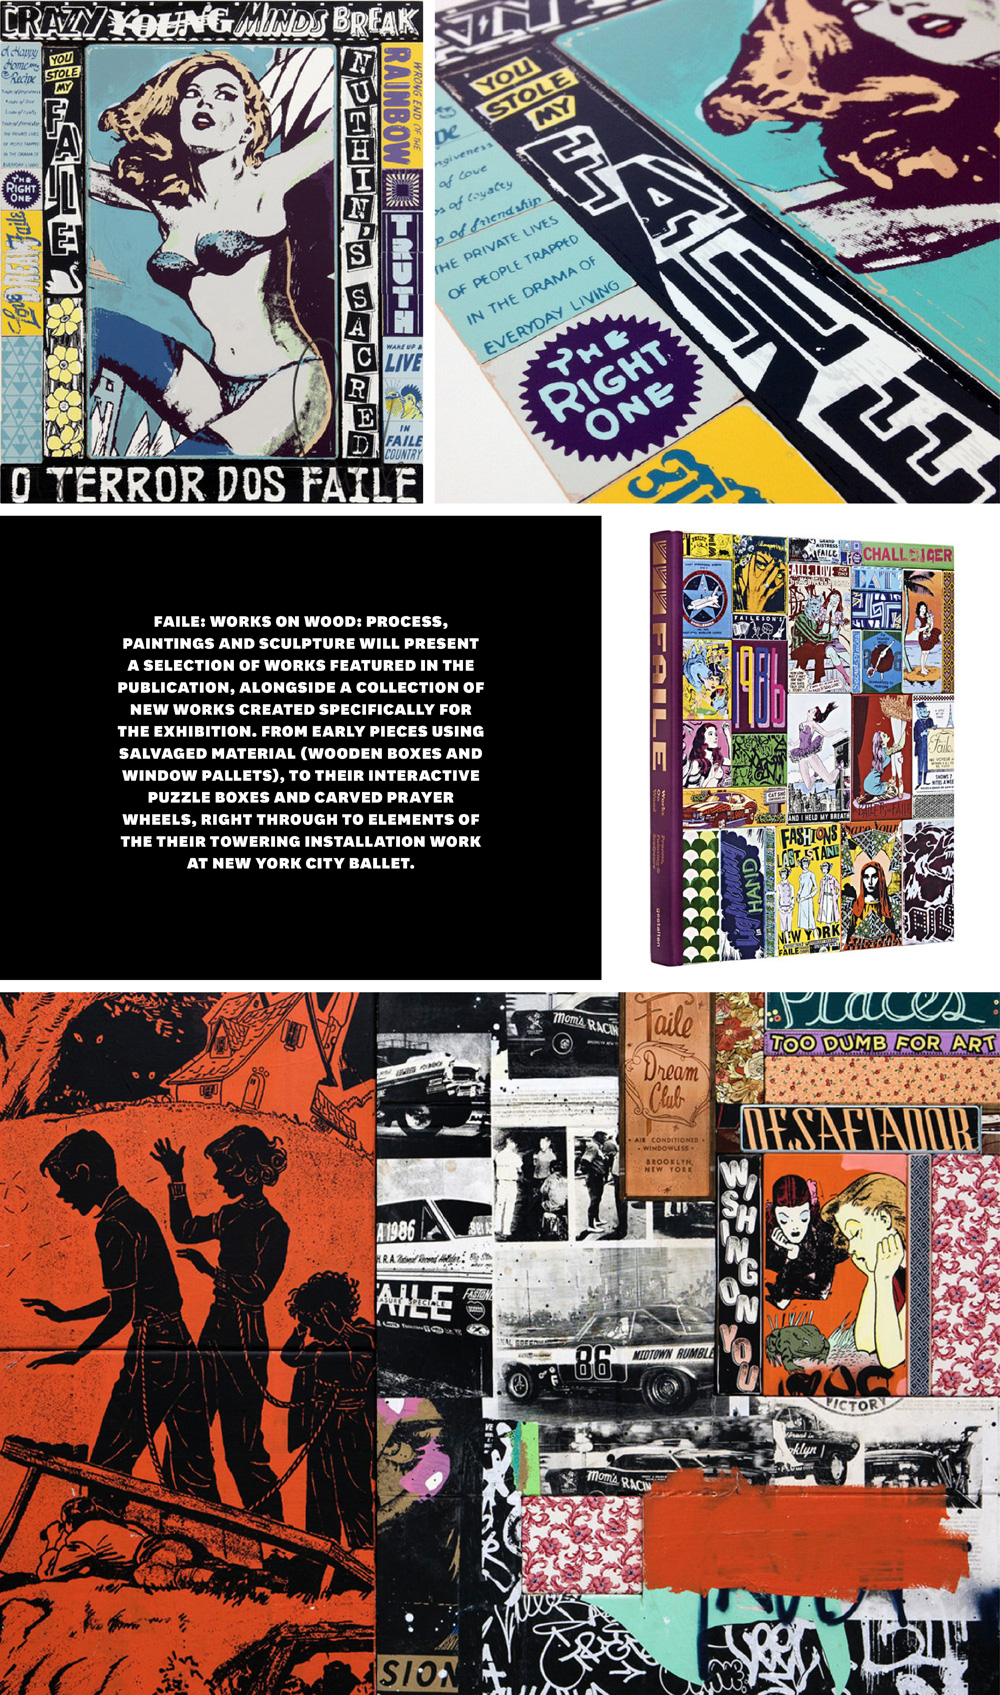 Faile_BLOGPOST_2.jpg